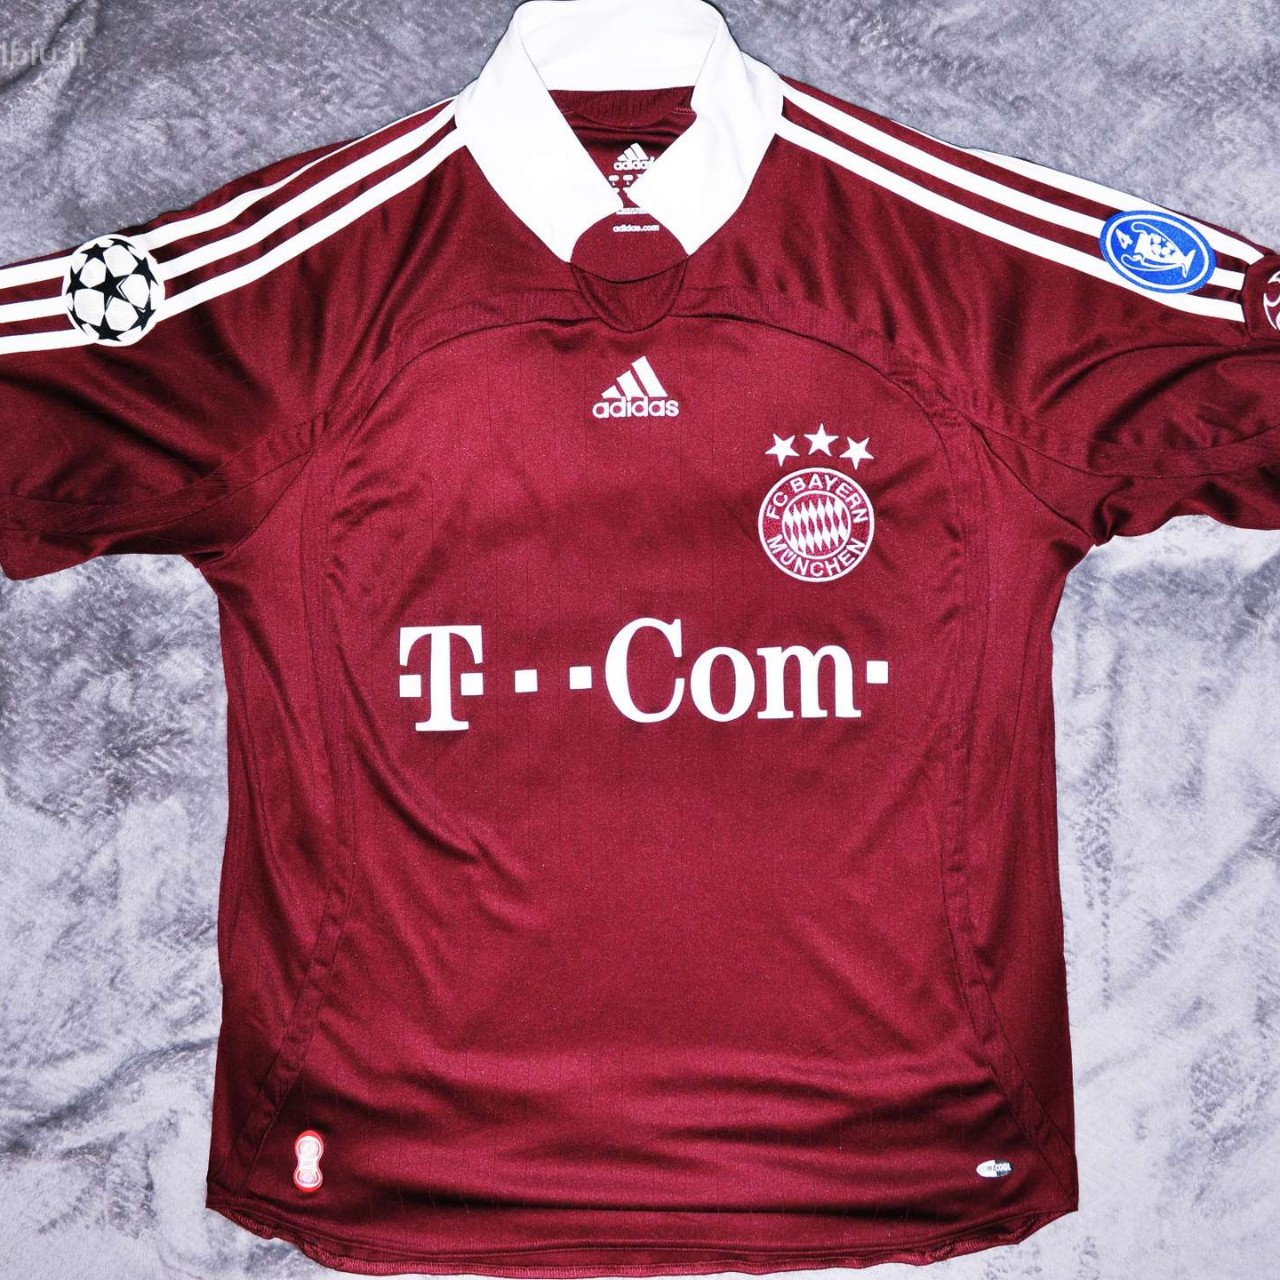 wholesale dealer ae6f2 80979 Bayern Munich Philipp Lahm 06-07 shirt. Excellent... - Depop